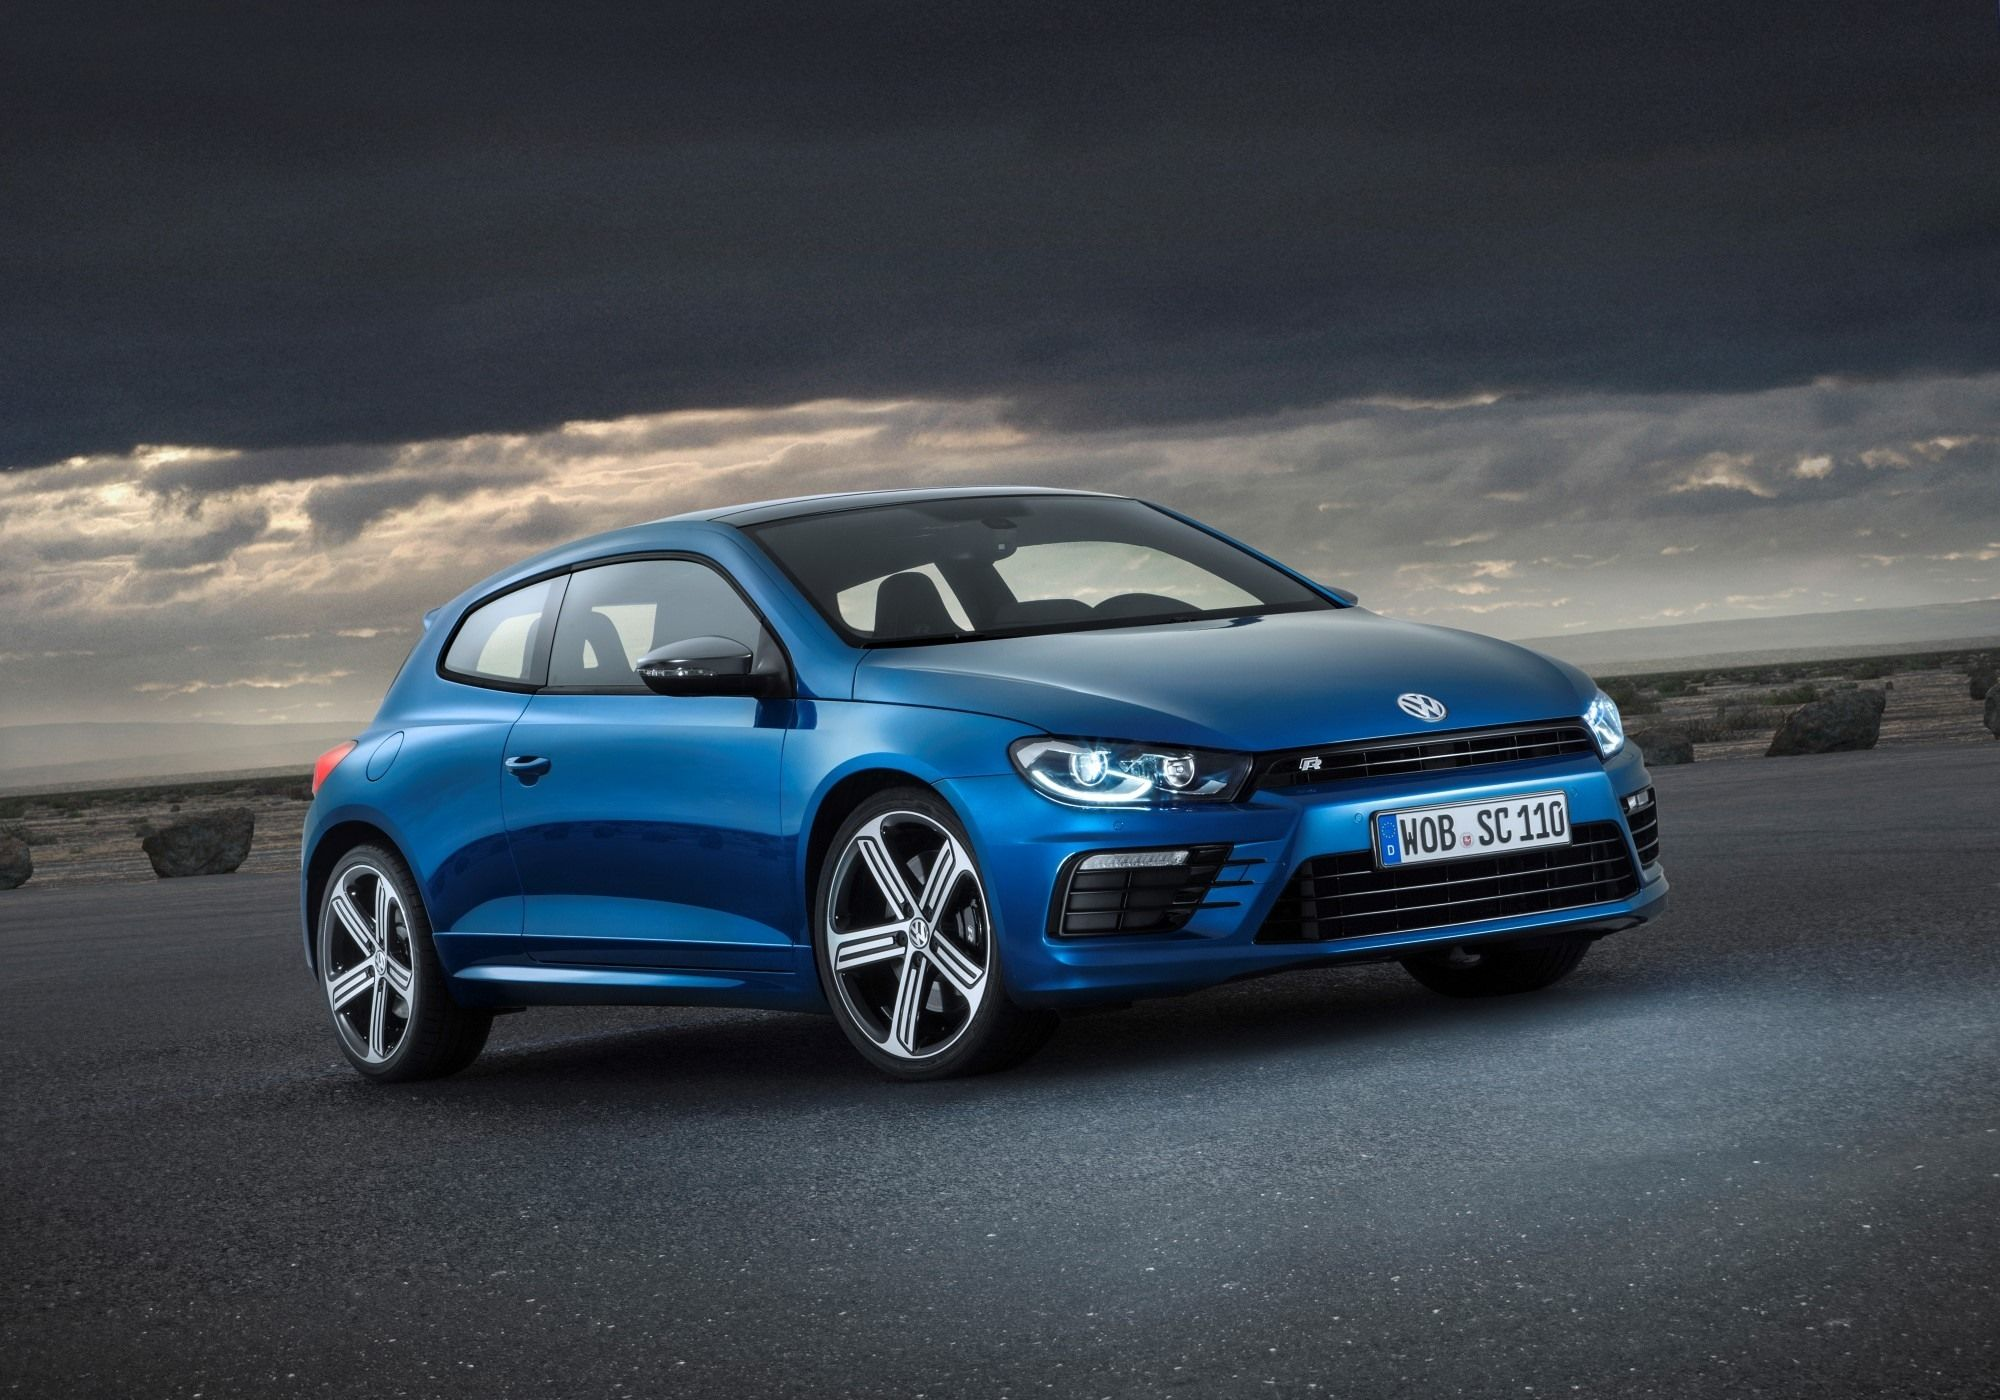 2019 Volkswagen Scirocco Overview And Price Volkswagen Scirocco Volkswagen Vw Scirocco